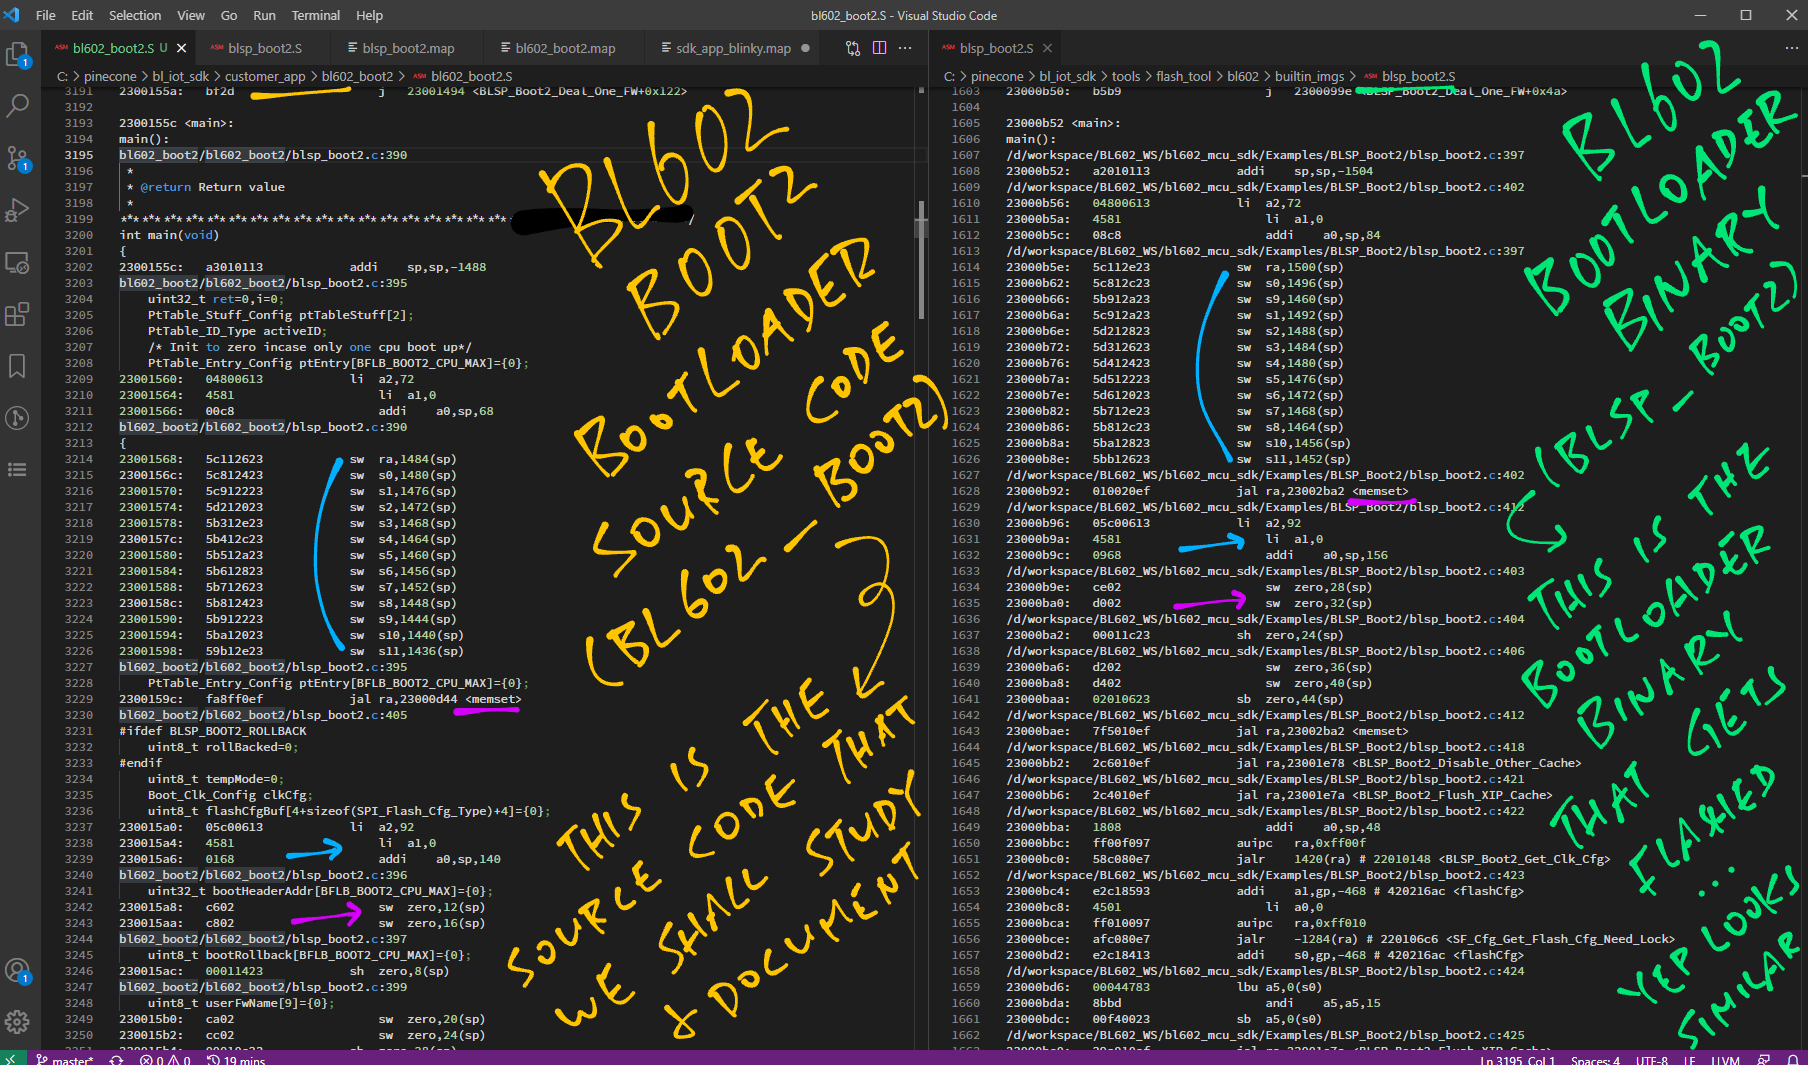 Comparing bl602_boot2 with blsp_boot2